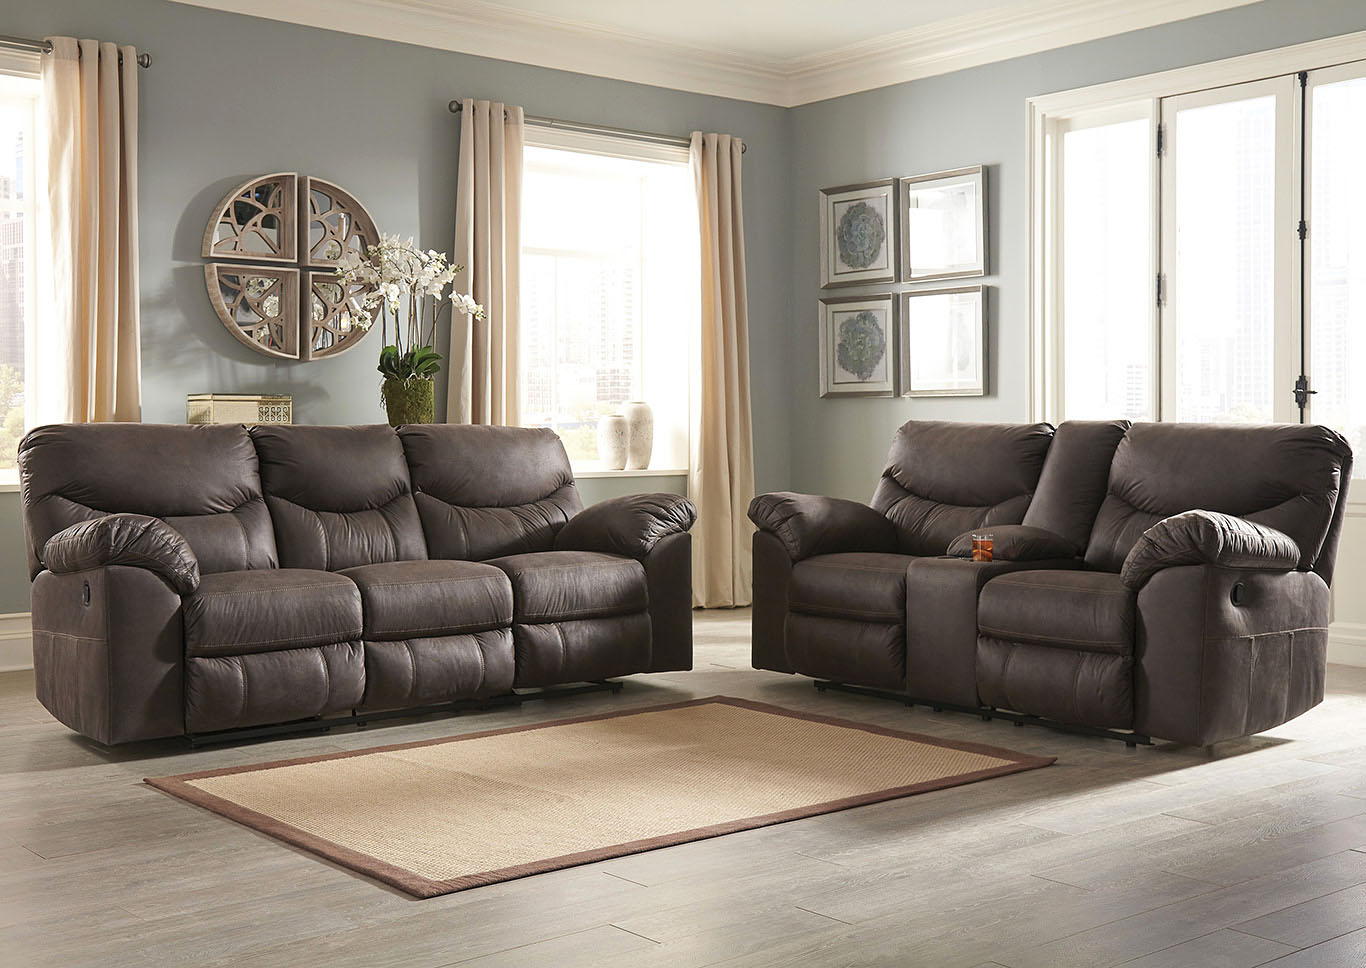 Boxberg Teak Reclining Sofa & Double Reclining Loveseat w/Console,Signature Design By Ashley